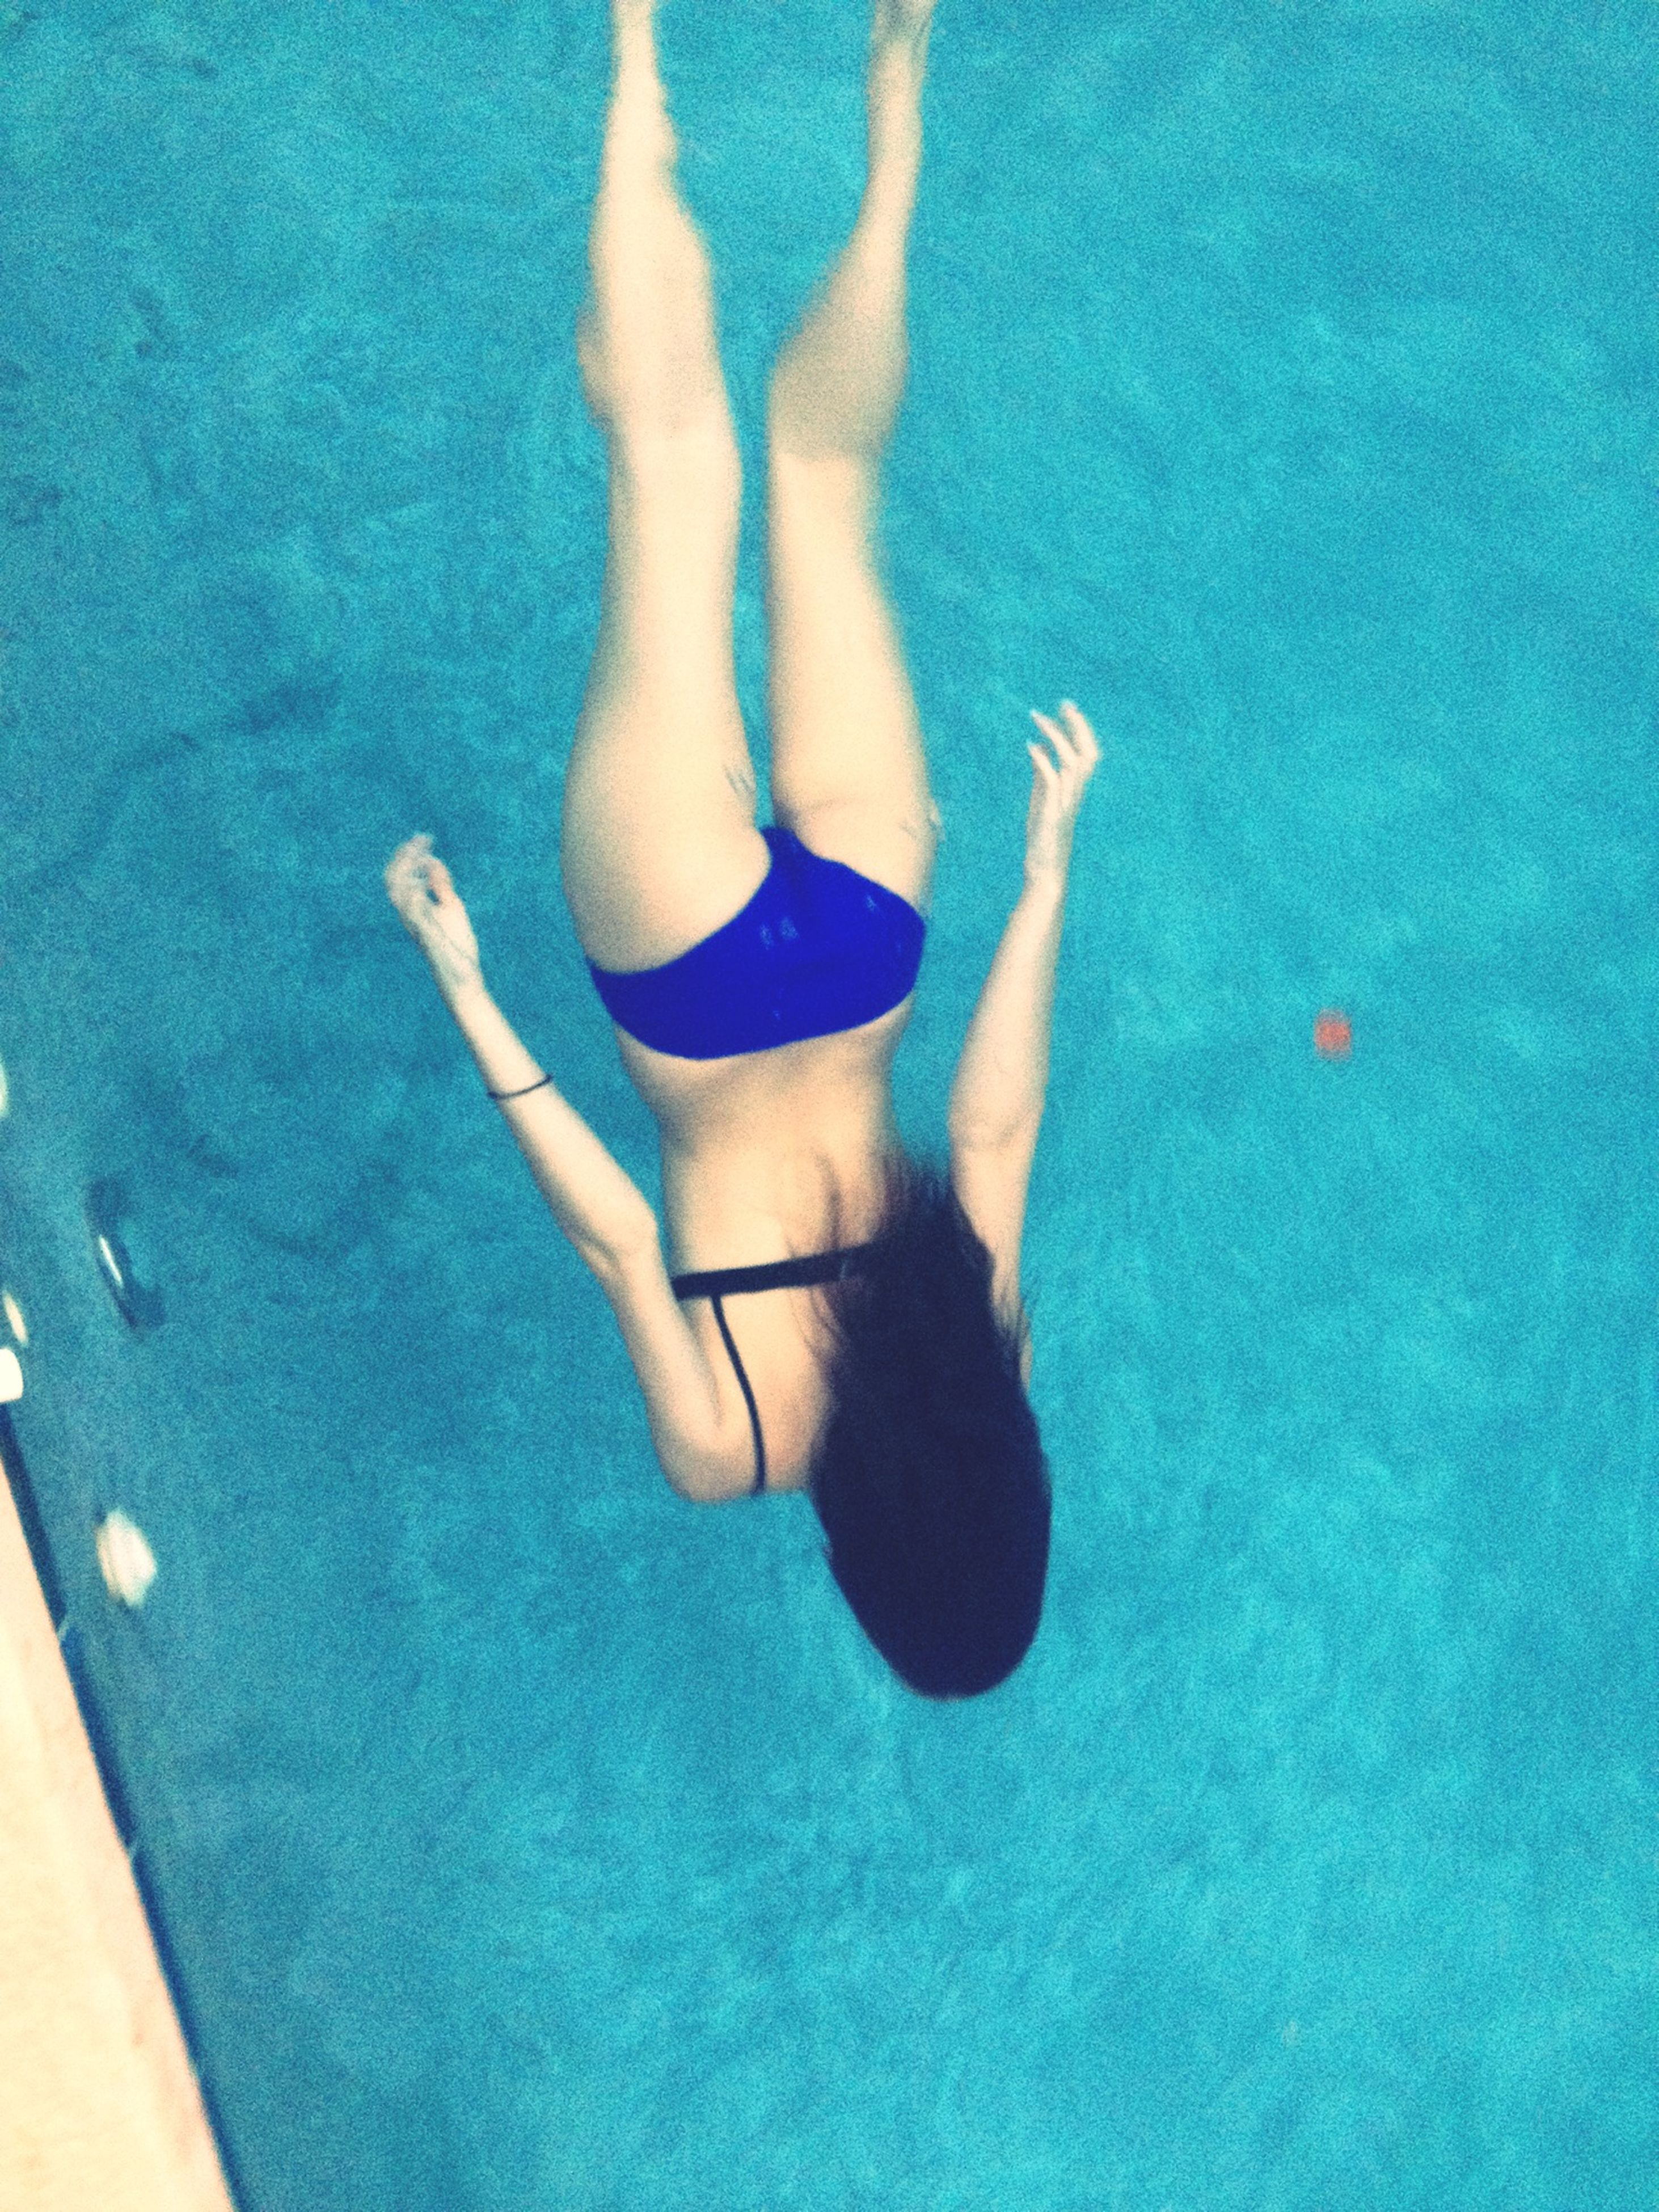 lifestyles, leisure activity, low section, person, swimming pool, blue, high angle view, barefoot, water, human foot, bikini, shadow, young adult, enjoyment, young women, vacations